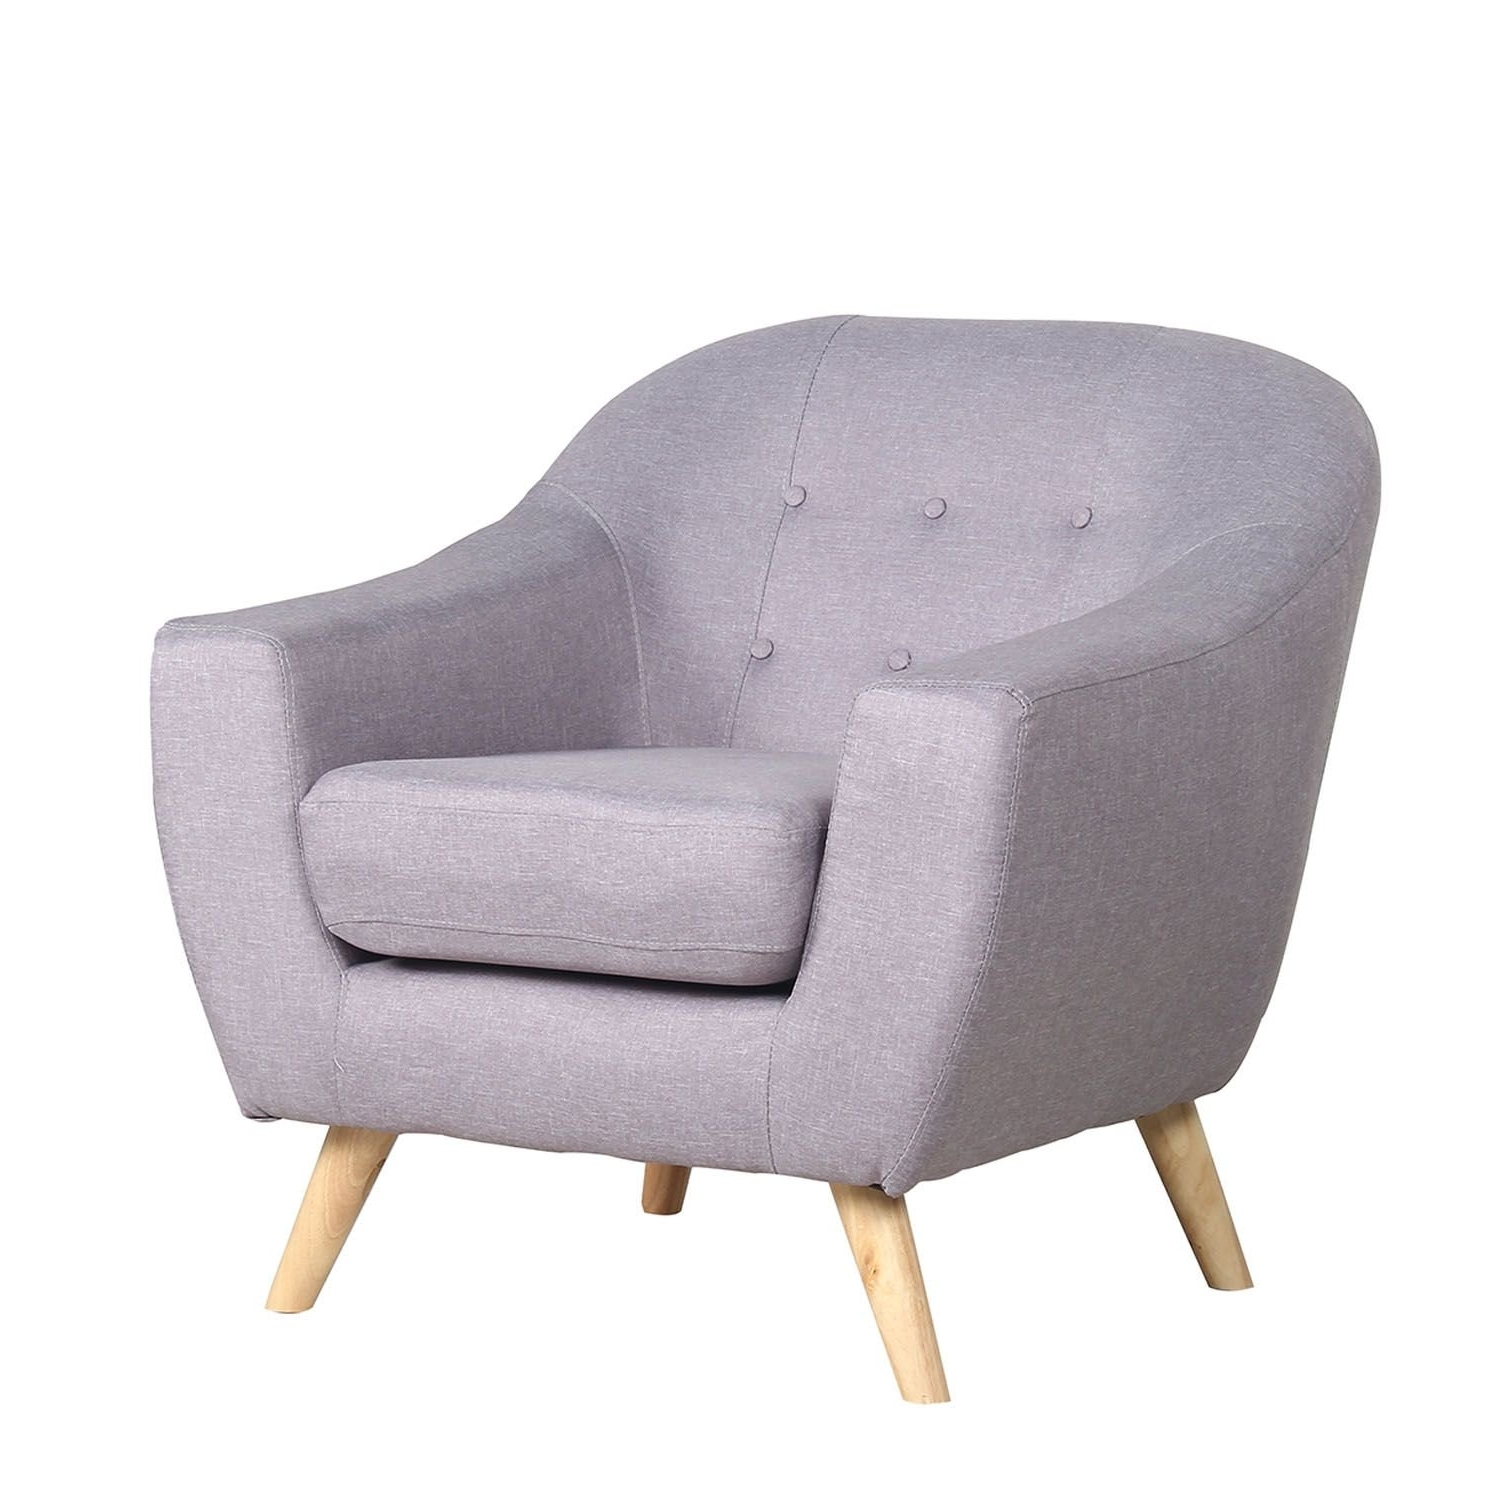 Single Seat Sofa Chairs Intended For Recent One Seater Sofa, A Combination Of Design & Comfort (View 6 of 20)